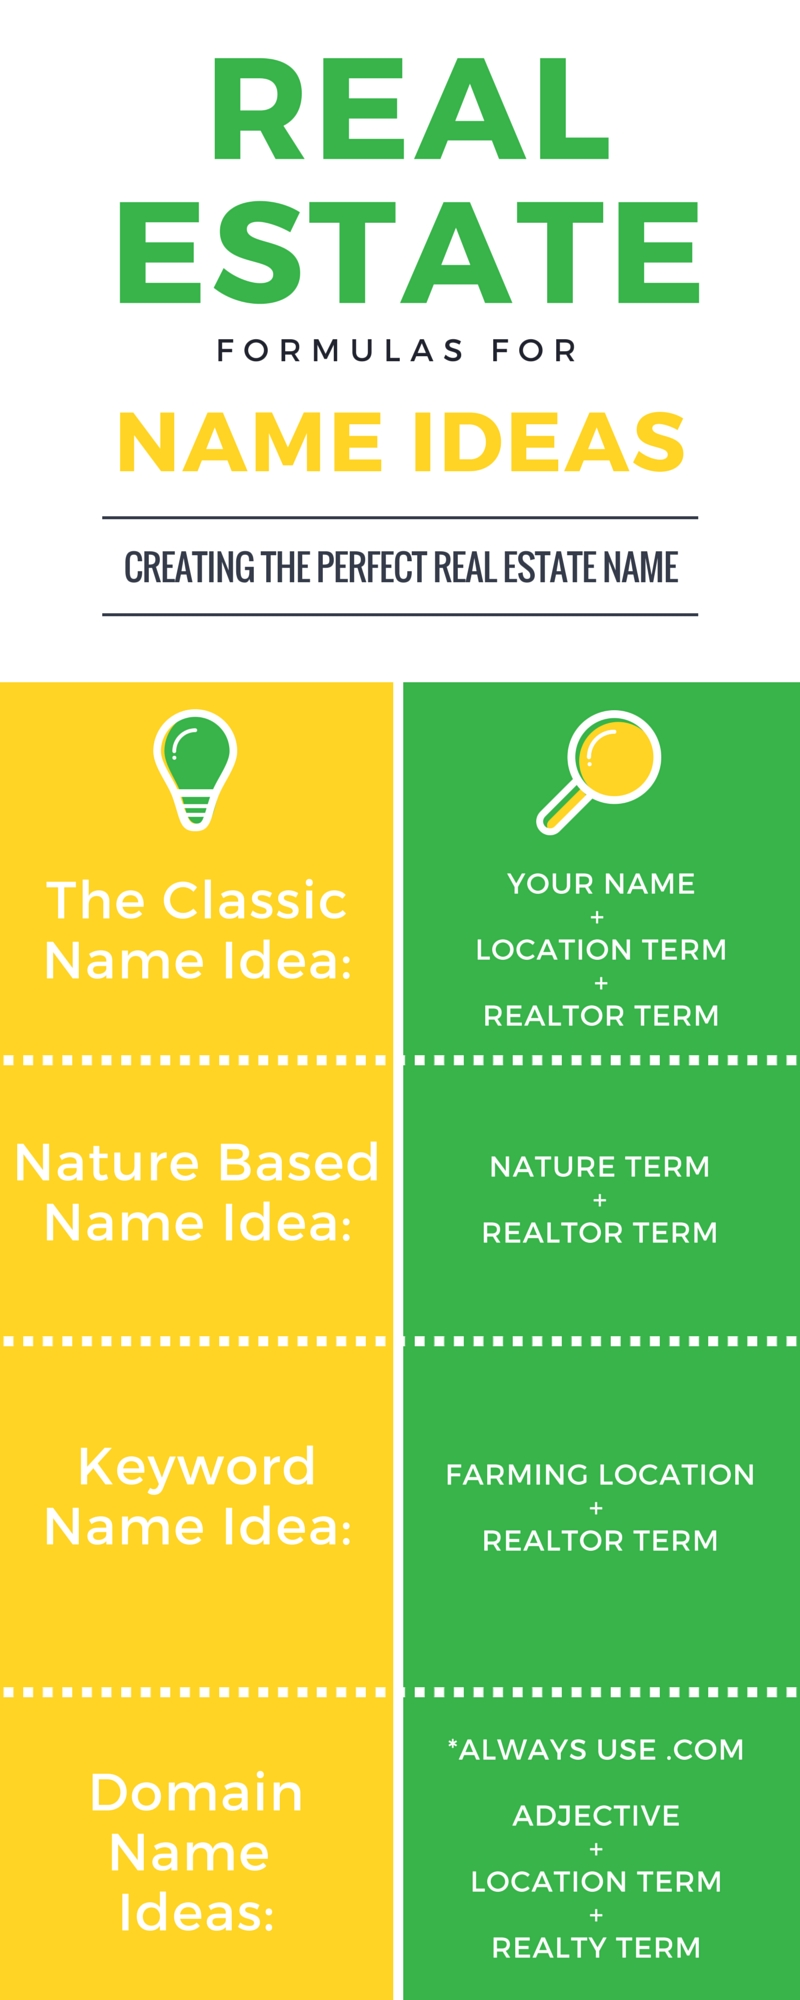 10 Beautiful Real Estate Company Names Ideas real estate name ideas and formulas top producers use 2021